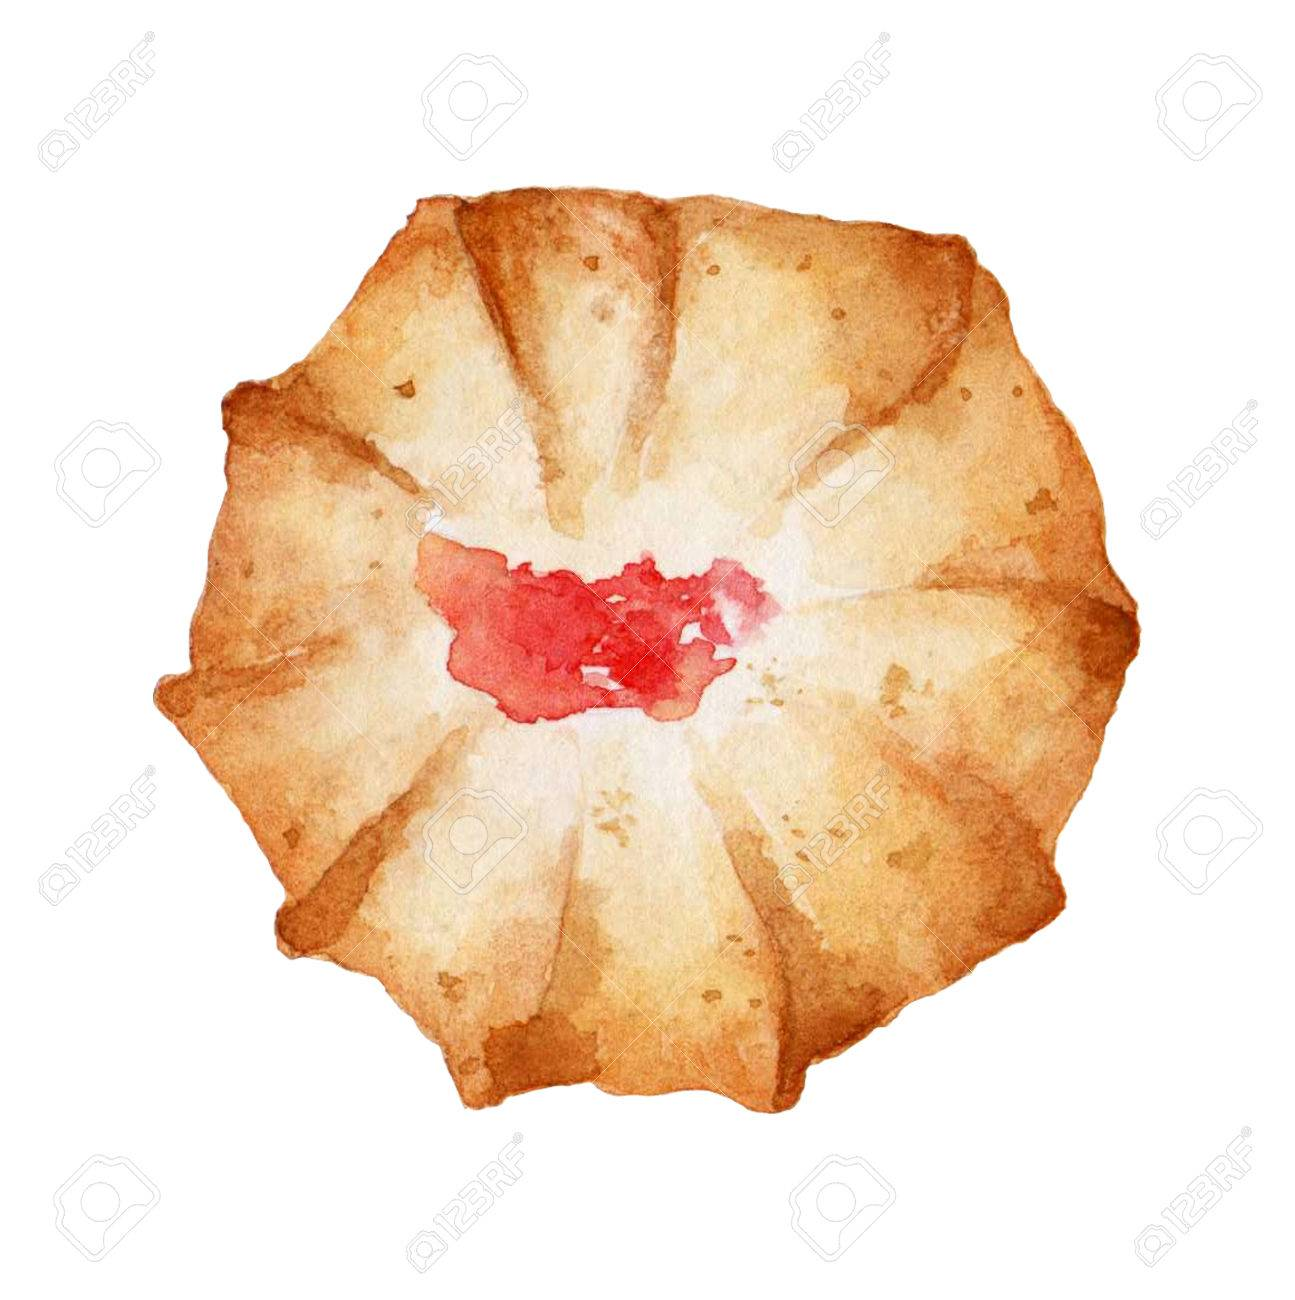 Shortbread cookies hand drawn watercolor illustration on white background. It can be used for card, postcard, cover, invitation, birthday card. - 67669957